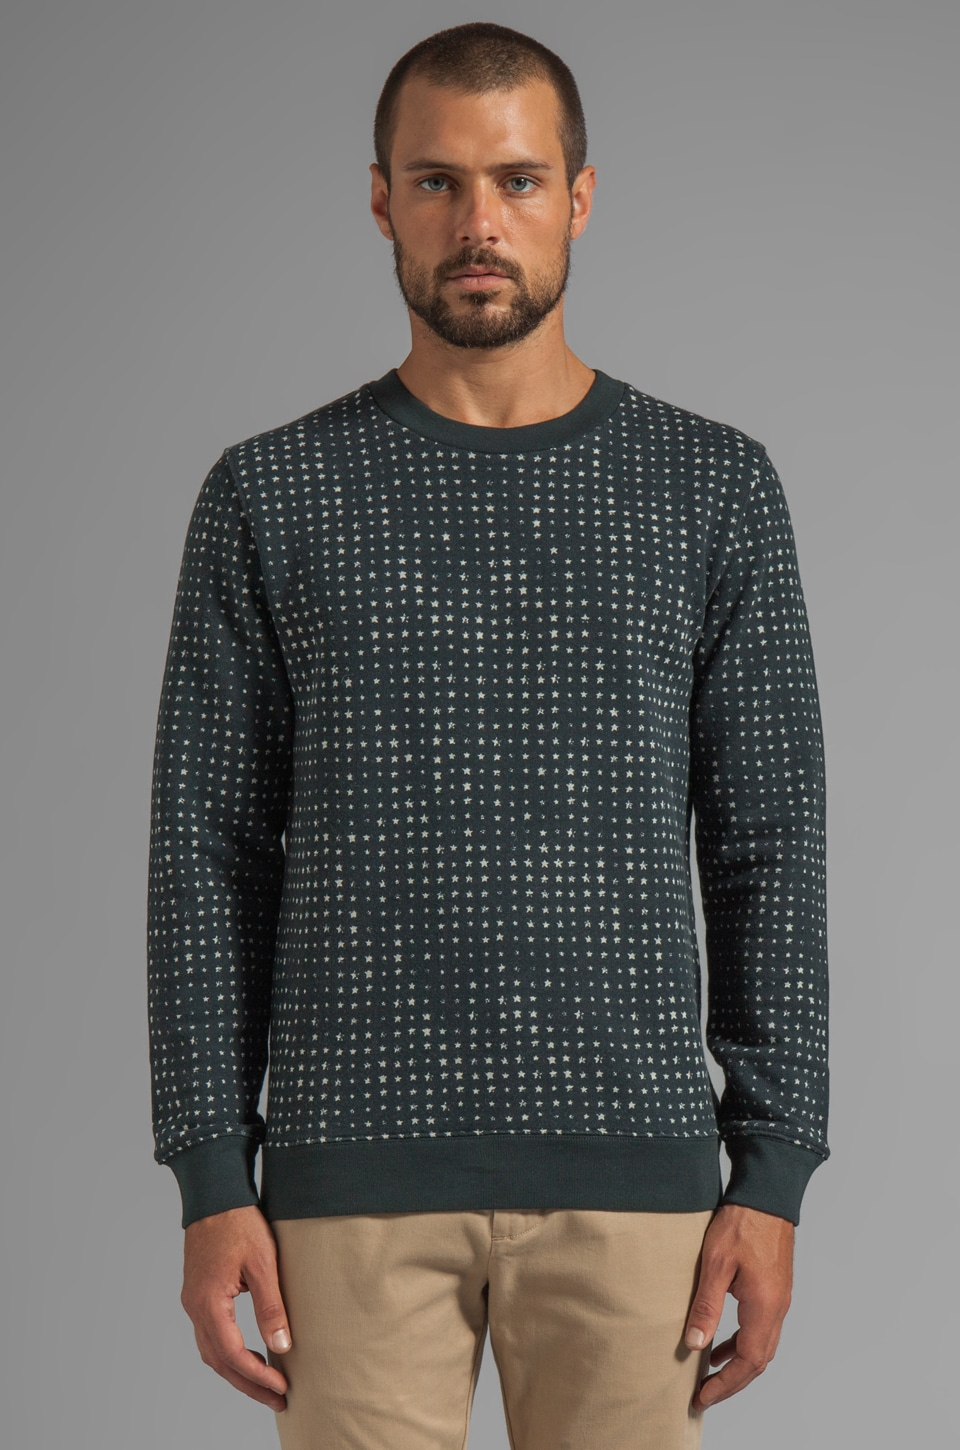 Marc by Marc Jacobs Enzo Star Sweatshirt in Light Grey Melange Multi